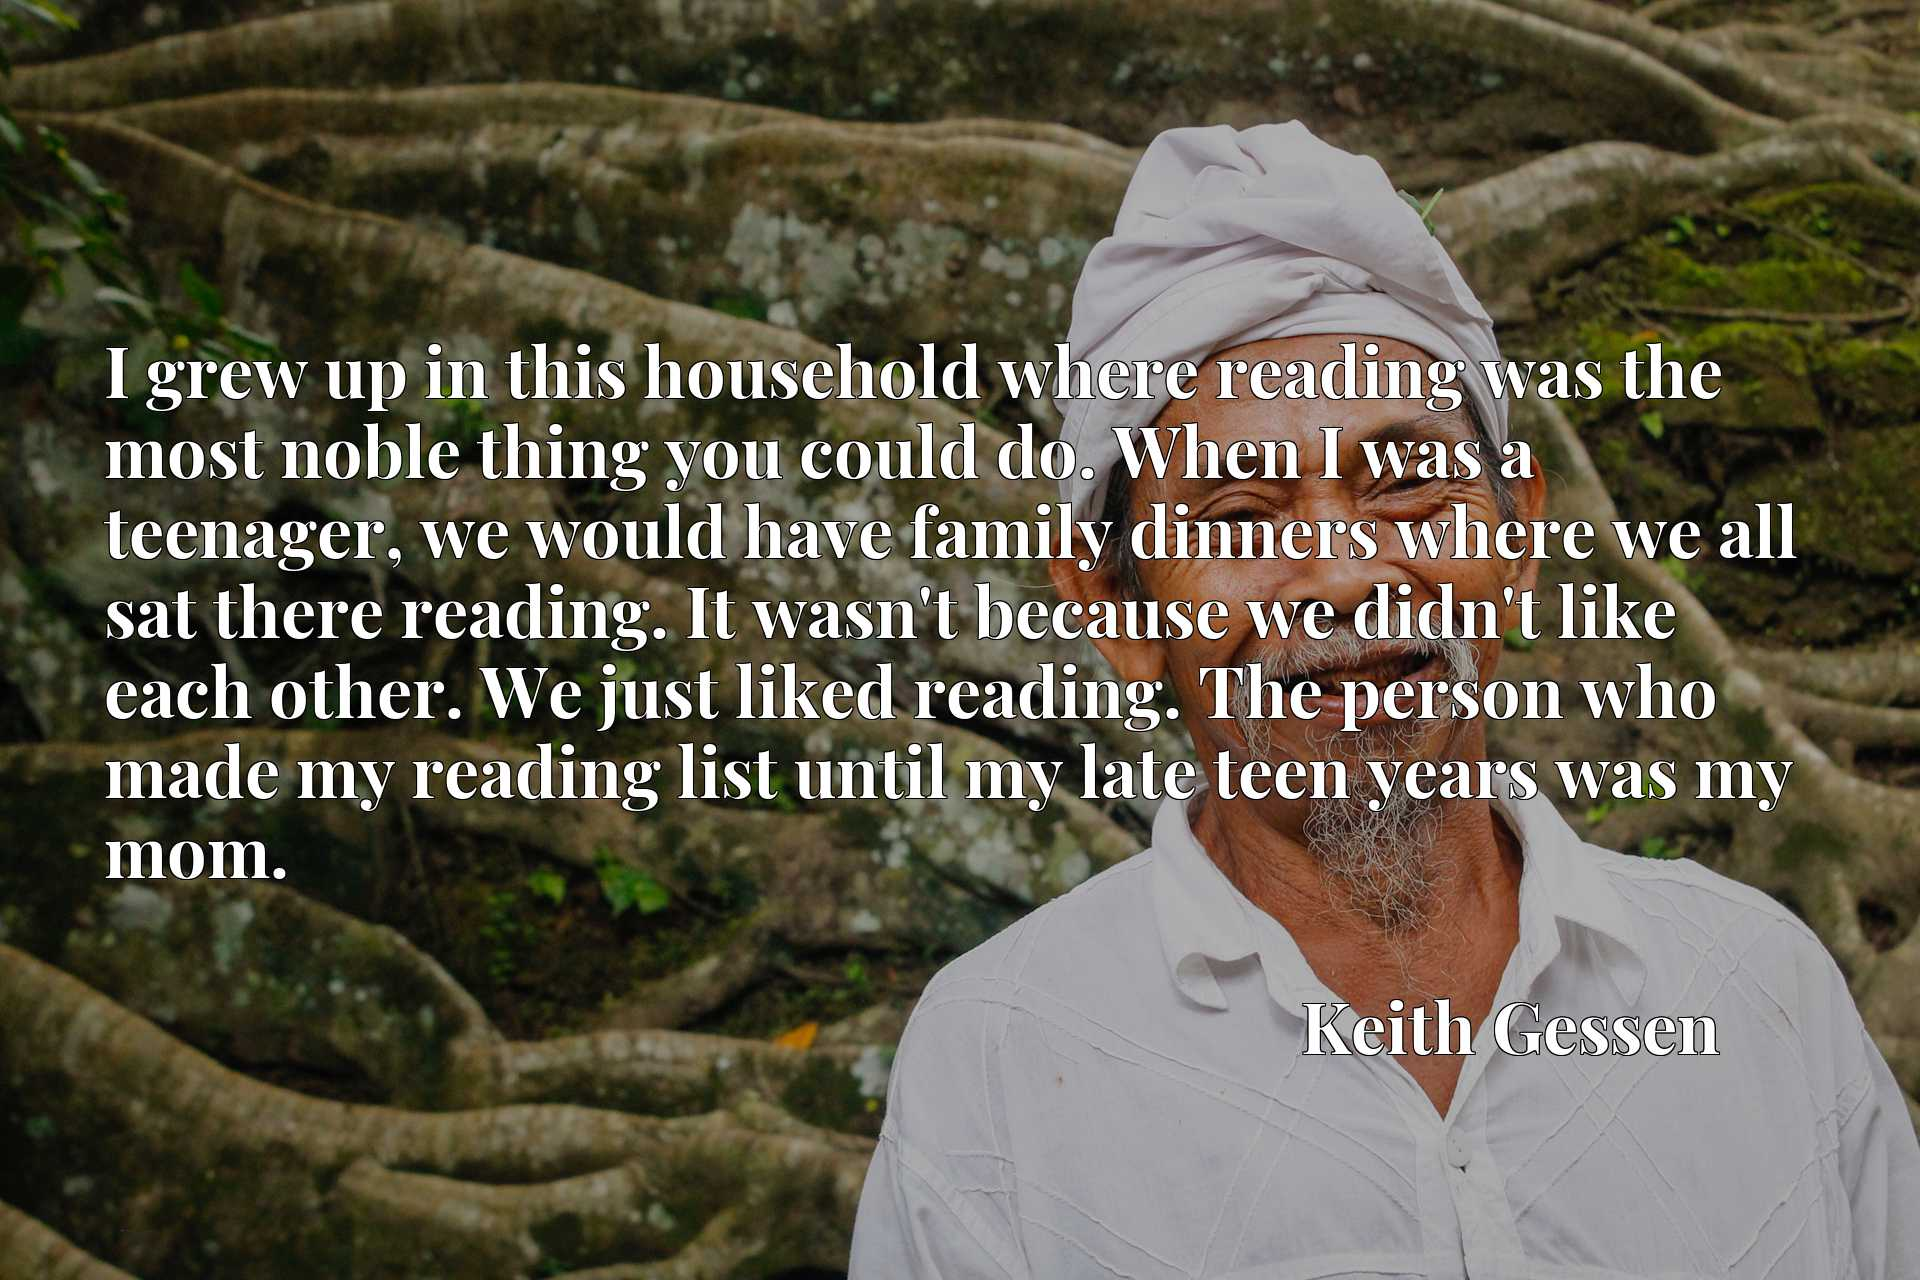 I grew up in this household where reading was the most noble thing you could do. When I was a teenager, we would have family dinners where we all sat there reading. It wasn't because we didn't like each other. We just liked reading. The person who made my reading list until my late teen years was my mom.